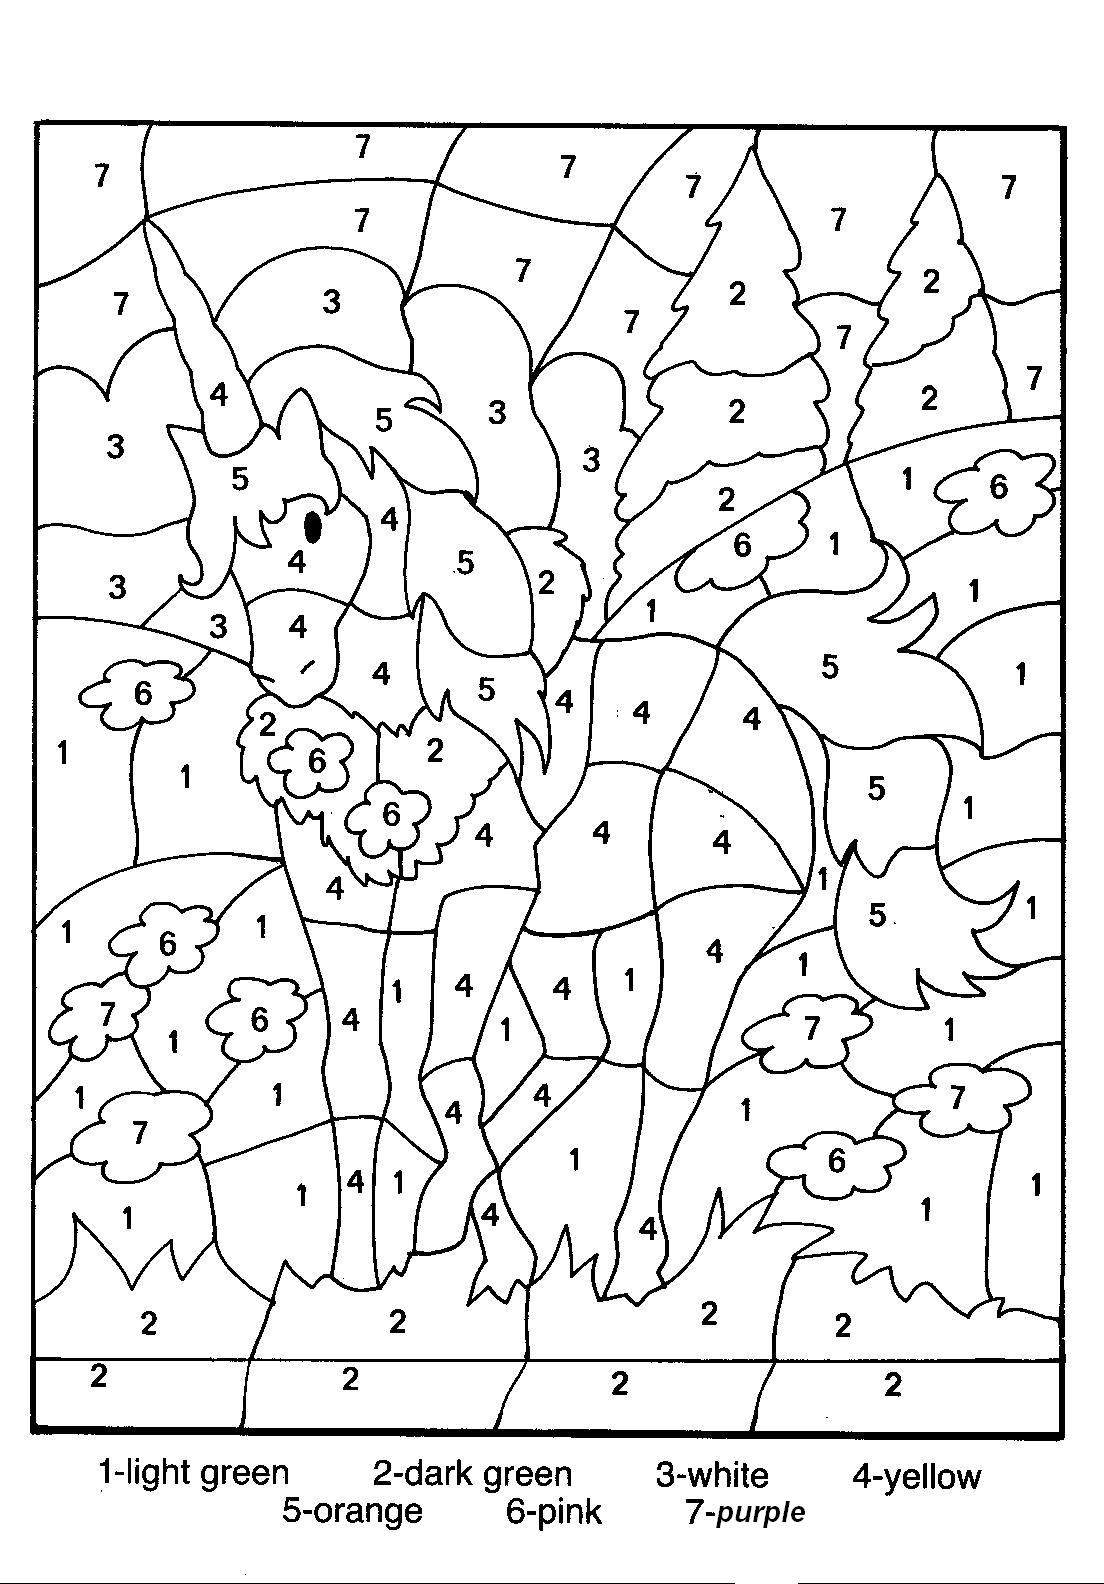 free printable color by number coloring pages best coloring mother day color by number coloring pages